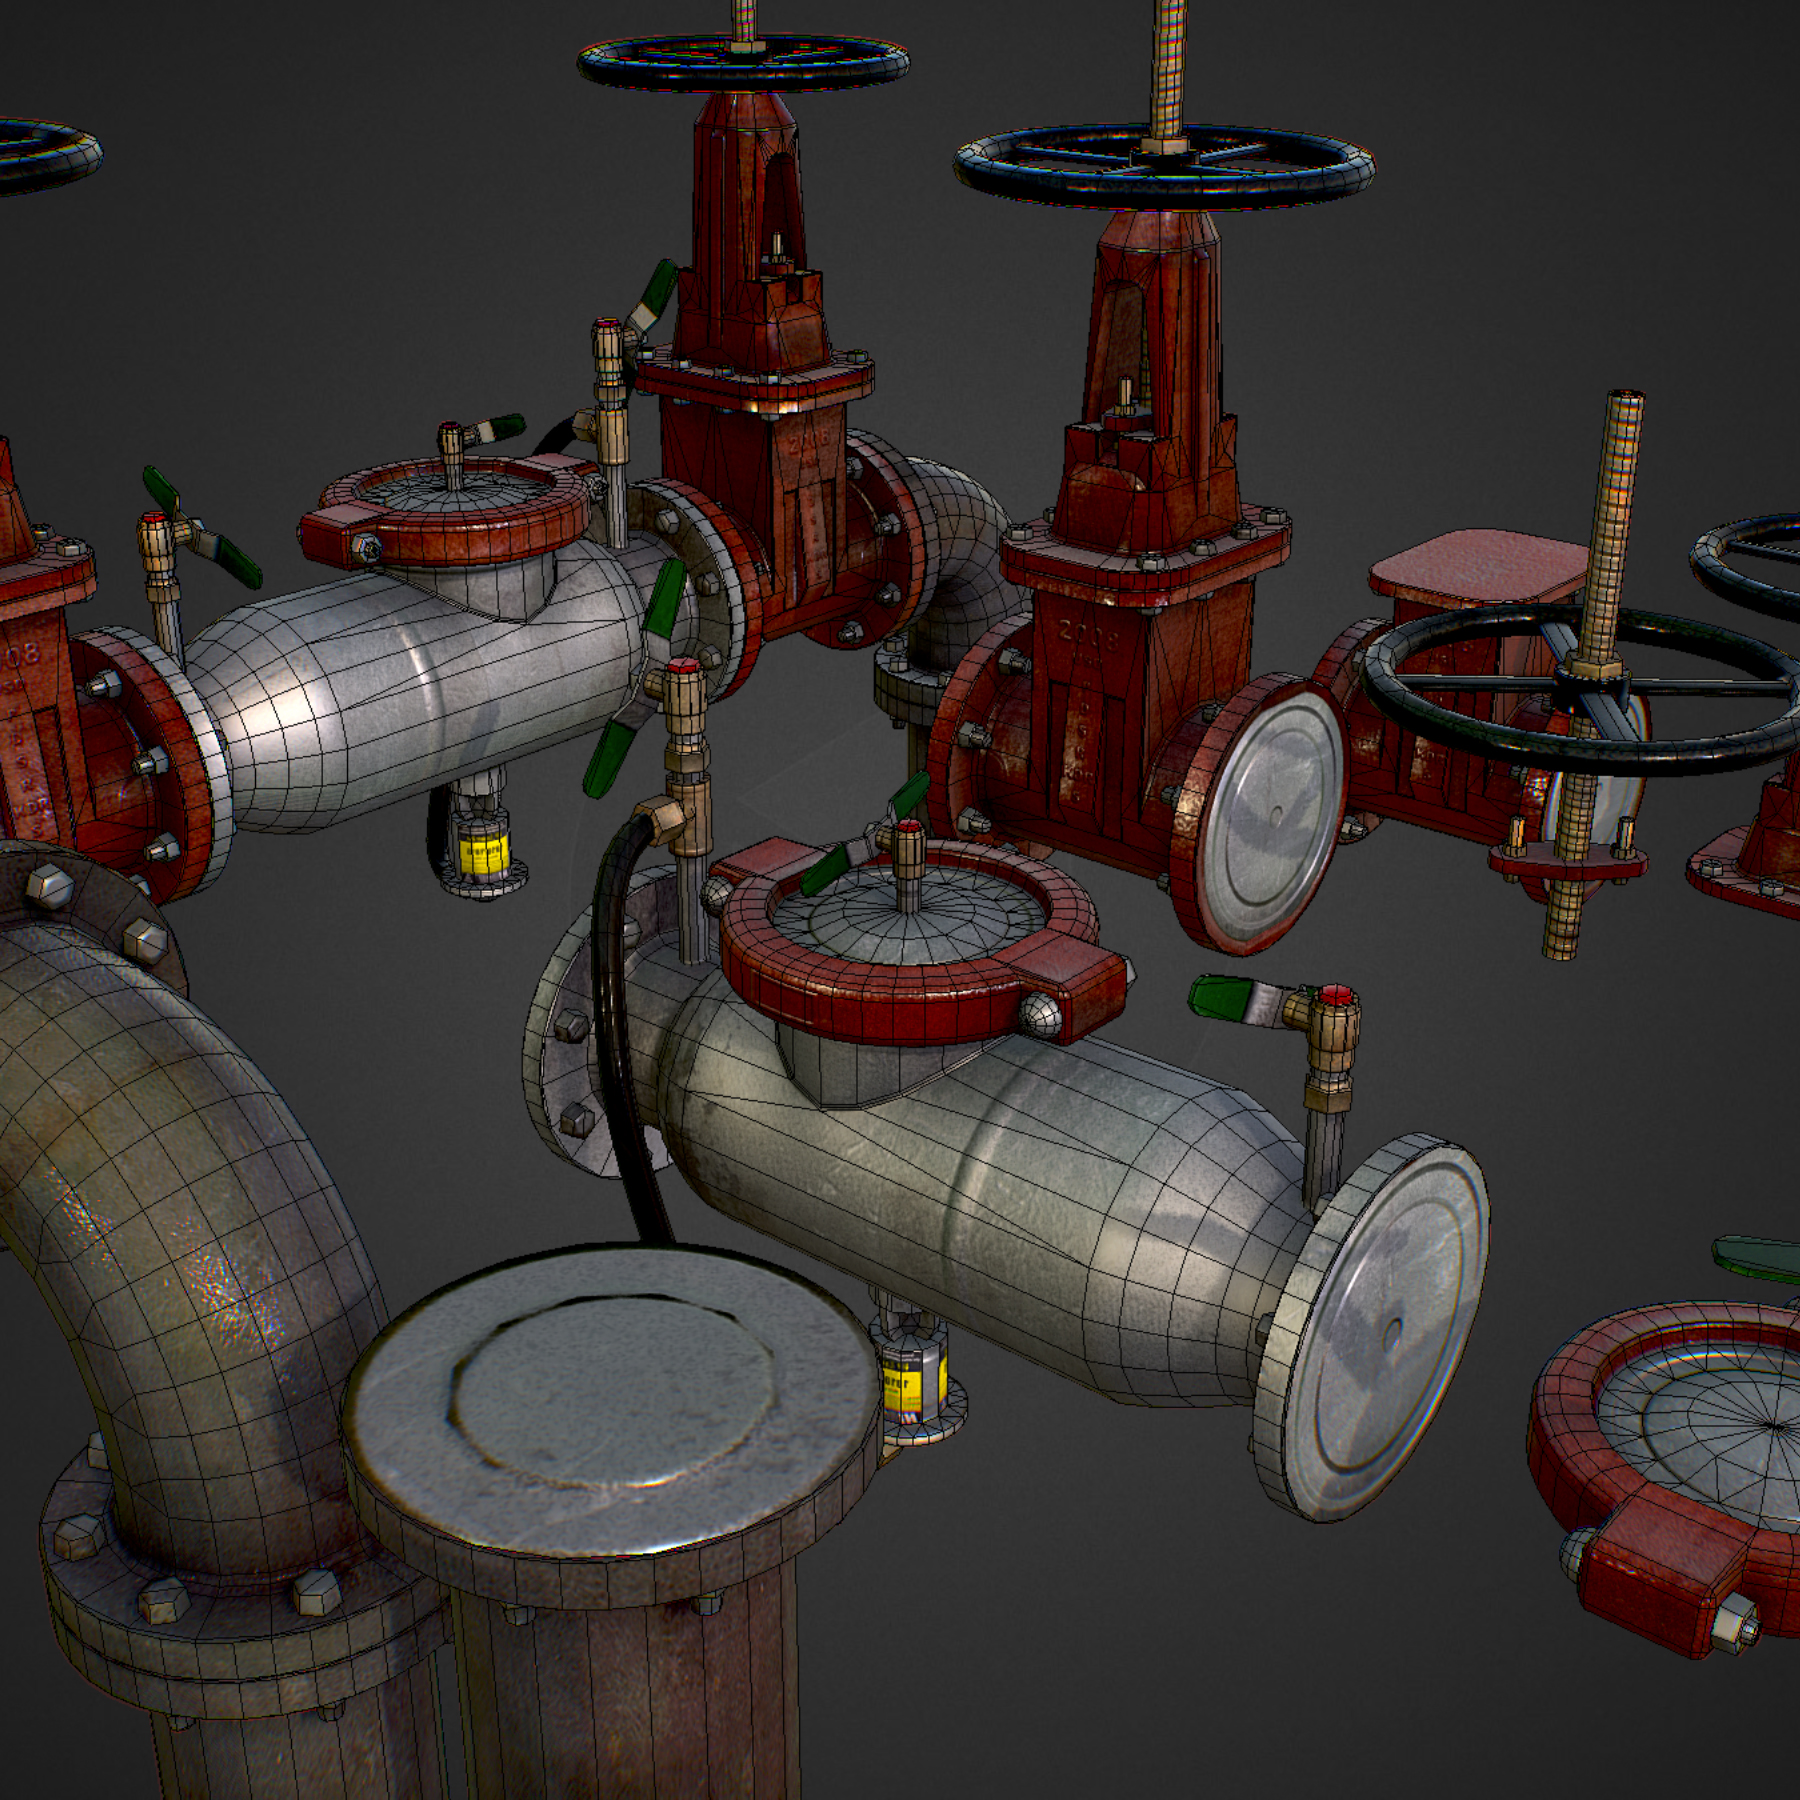 low poly game backflow water pipe constructor 3d model max  fbx ma mb tga targa icb vda vst pix obj 272483